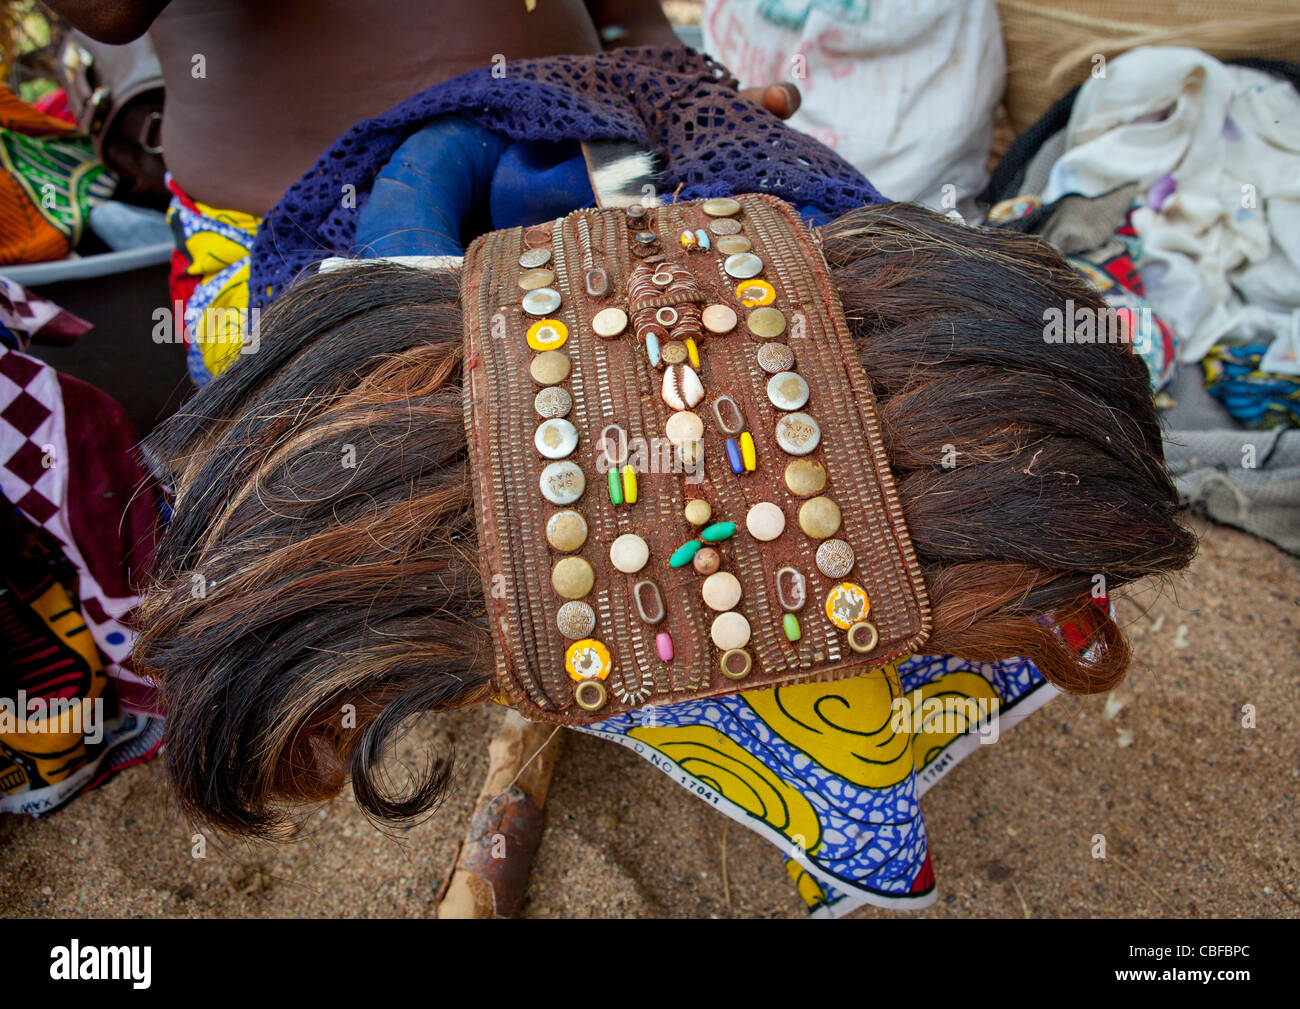 Cow Tails Used To Make Headdresses, Virie Area, Angola - Stock Image